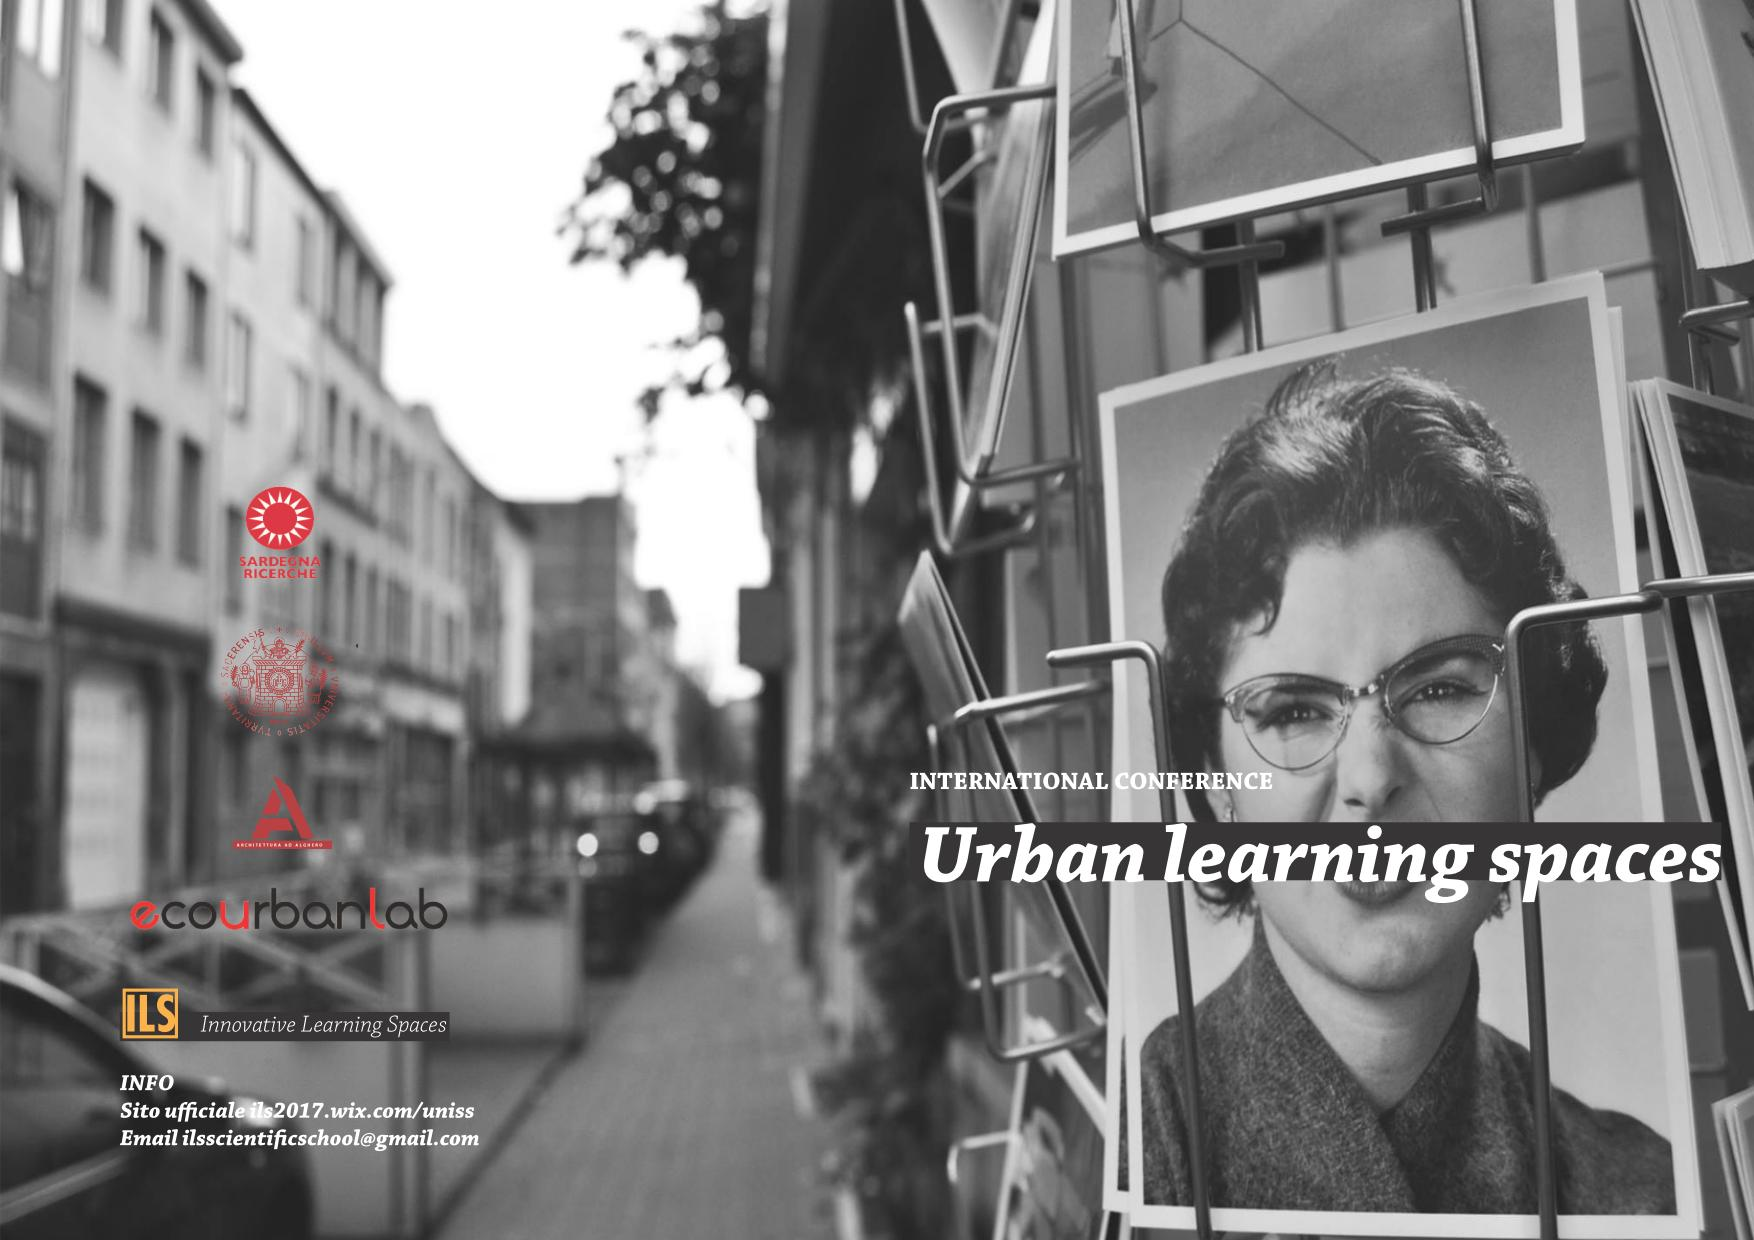 Urban learning spaces